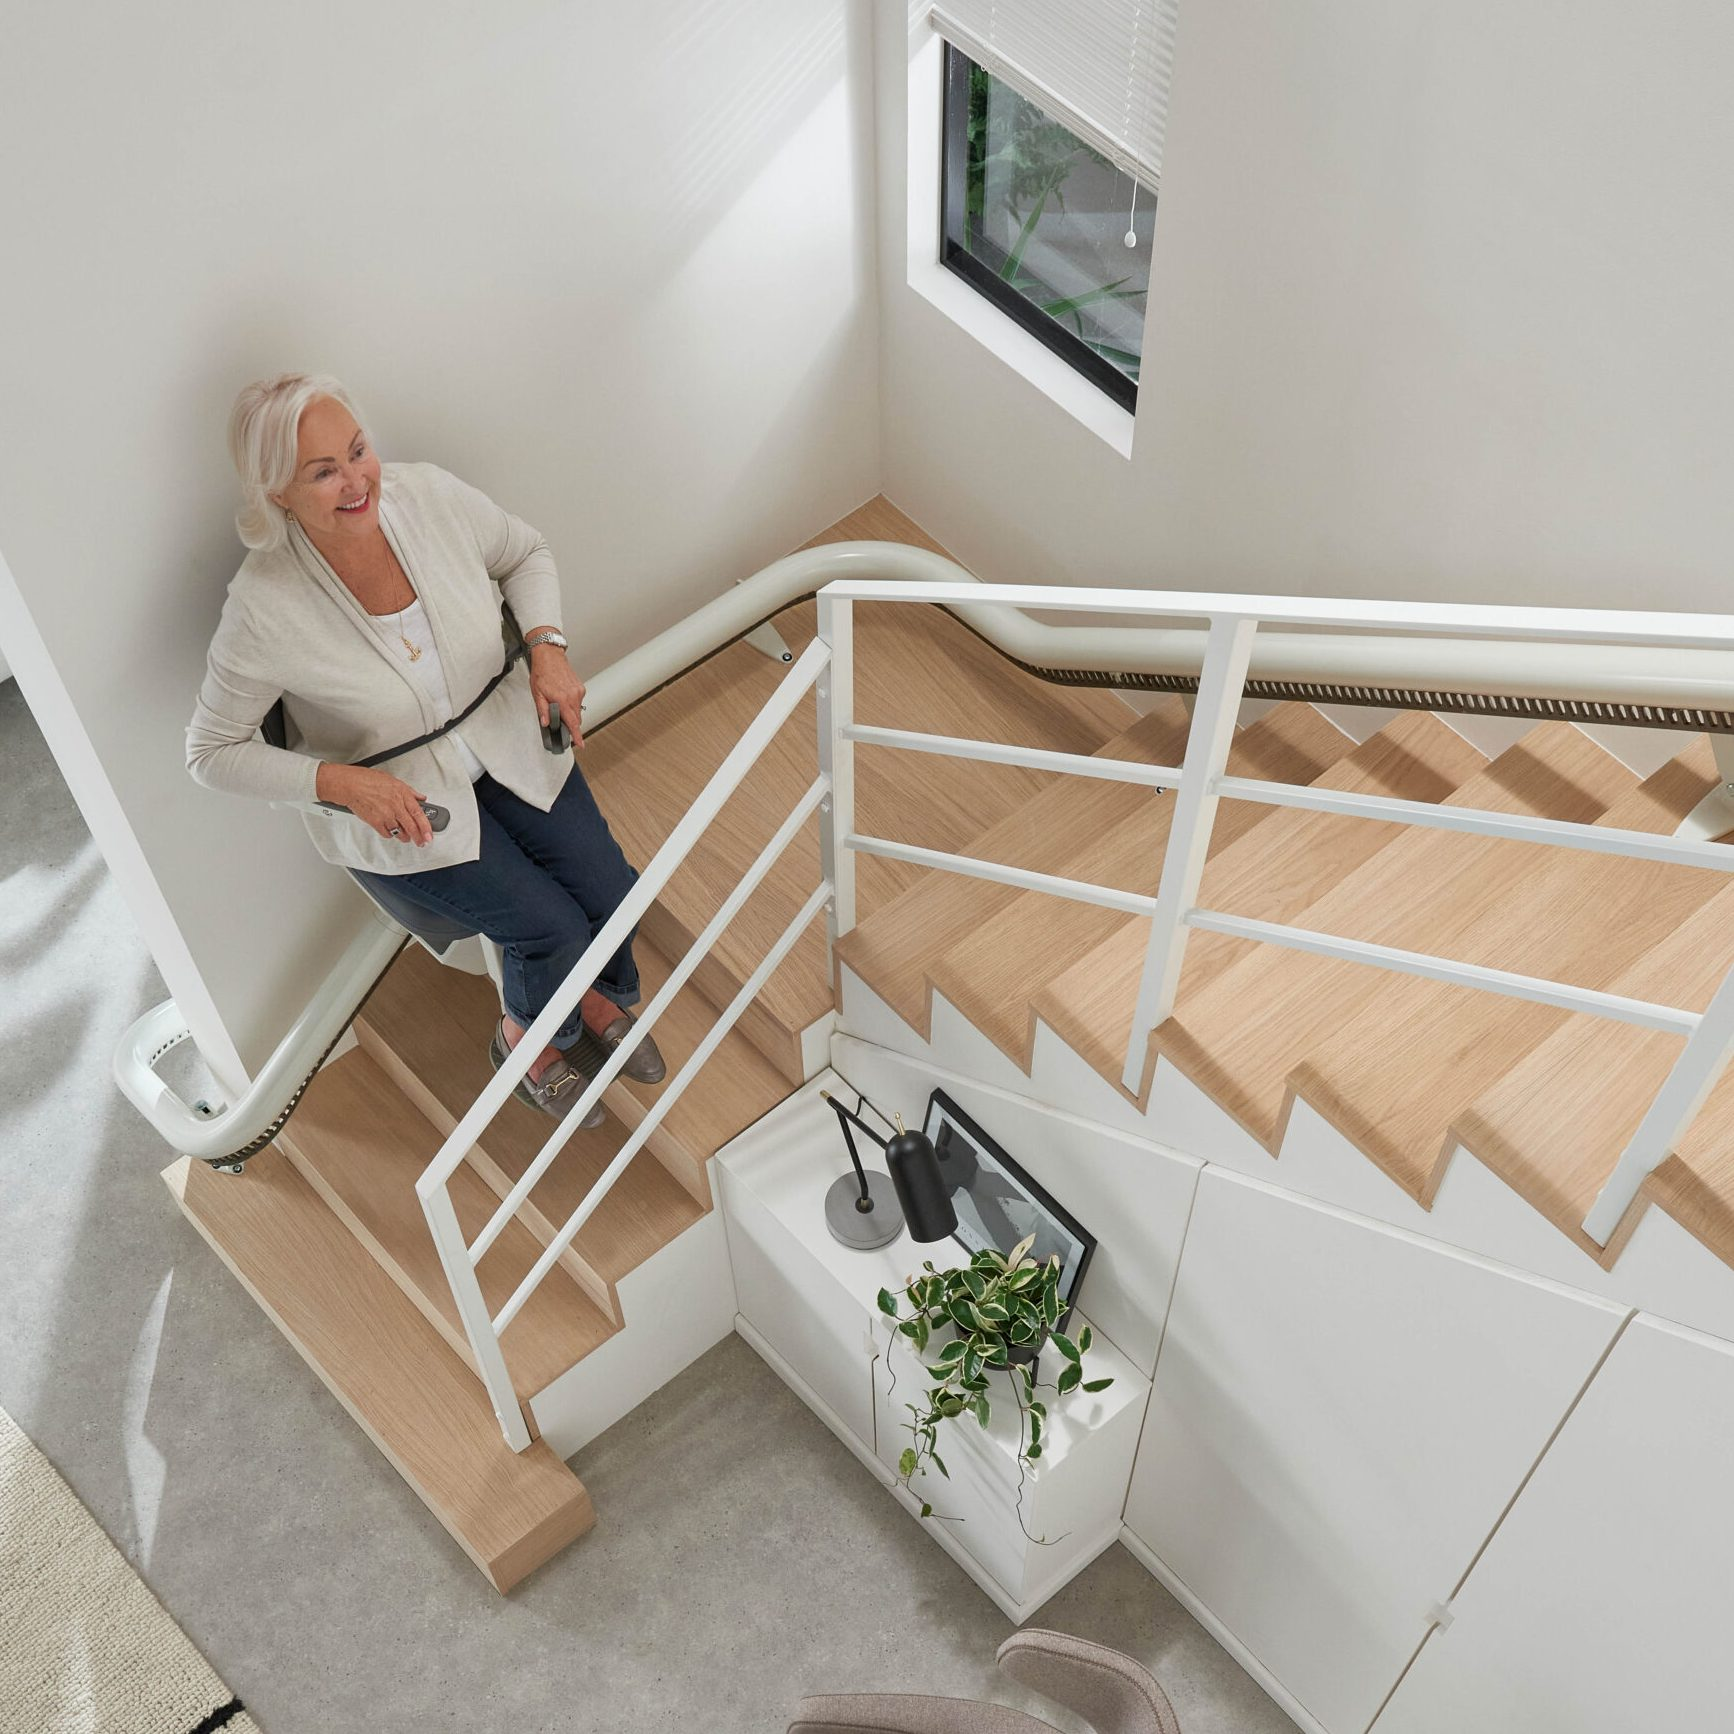 Woman using stairlift independently in a home setting.